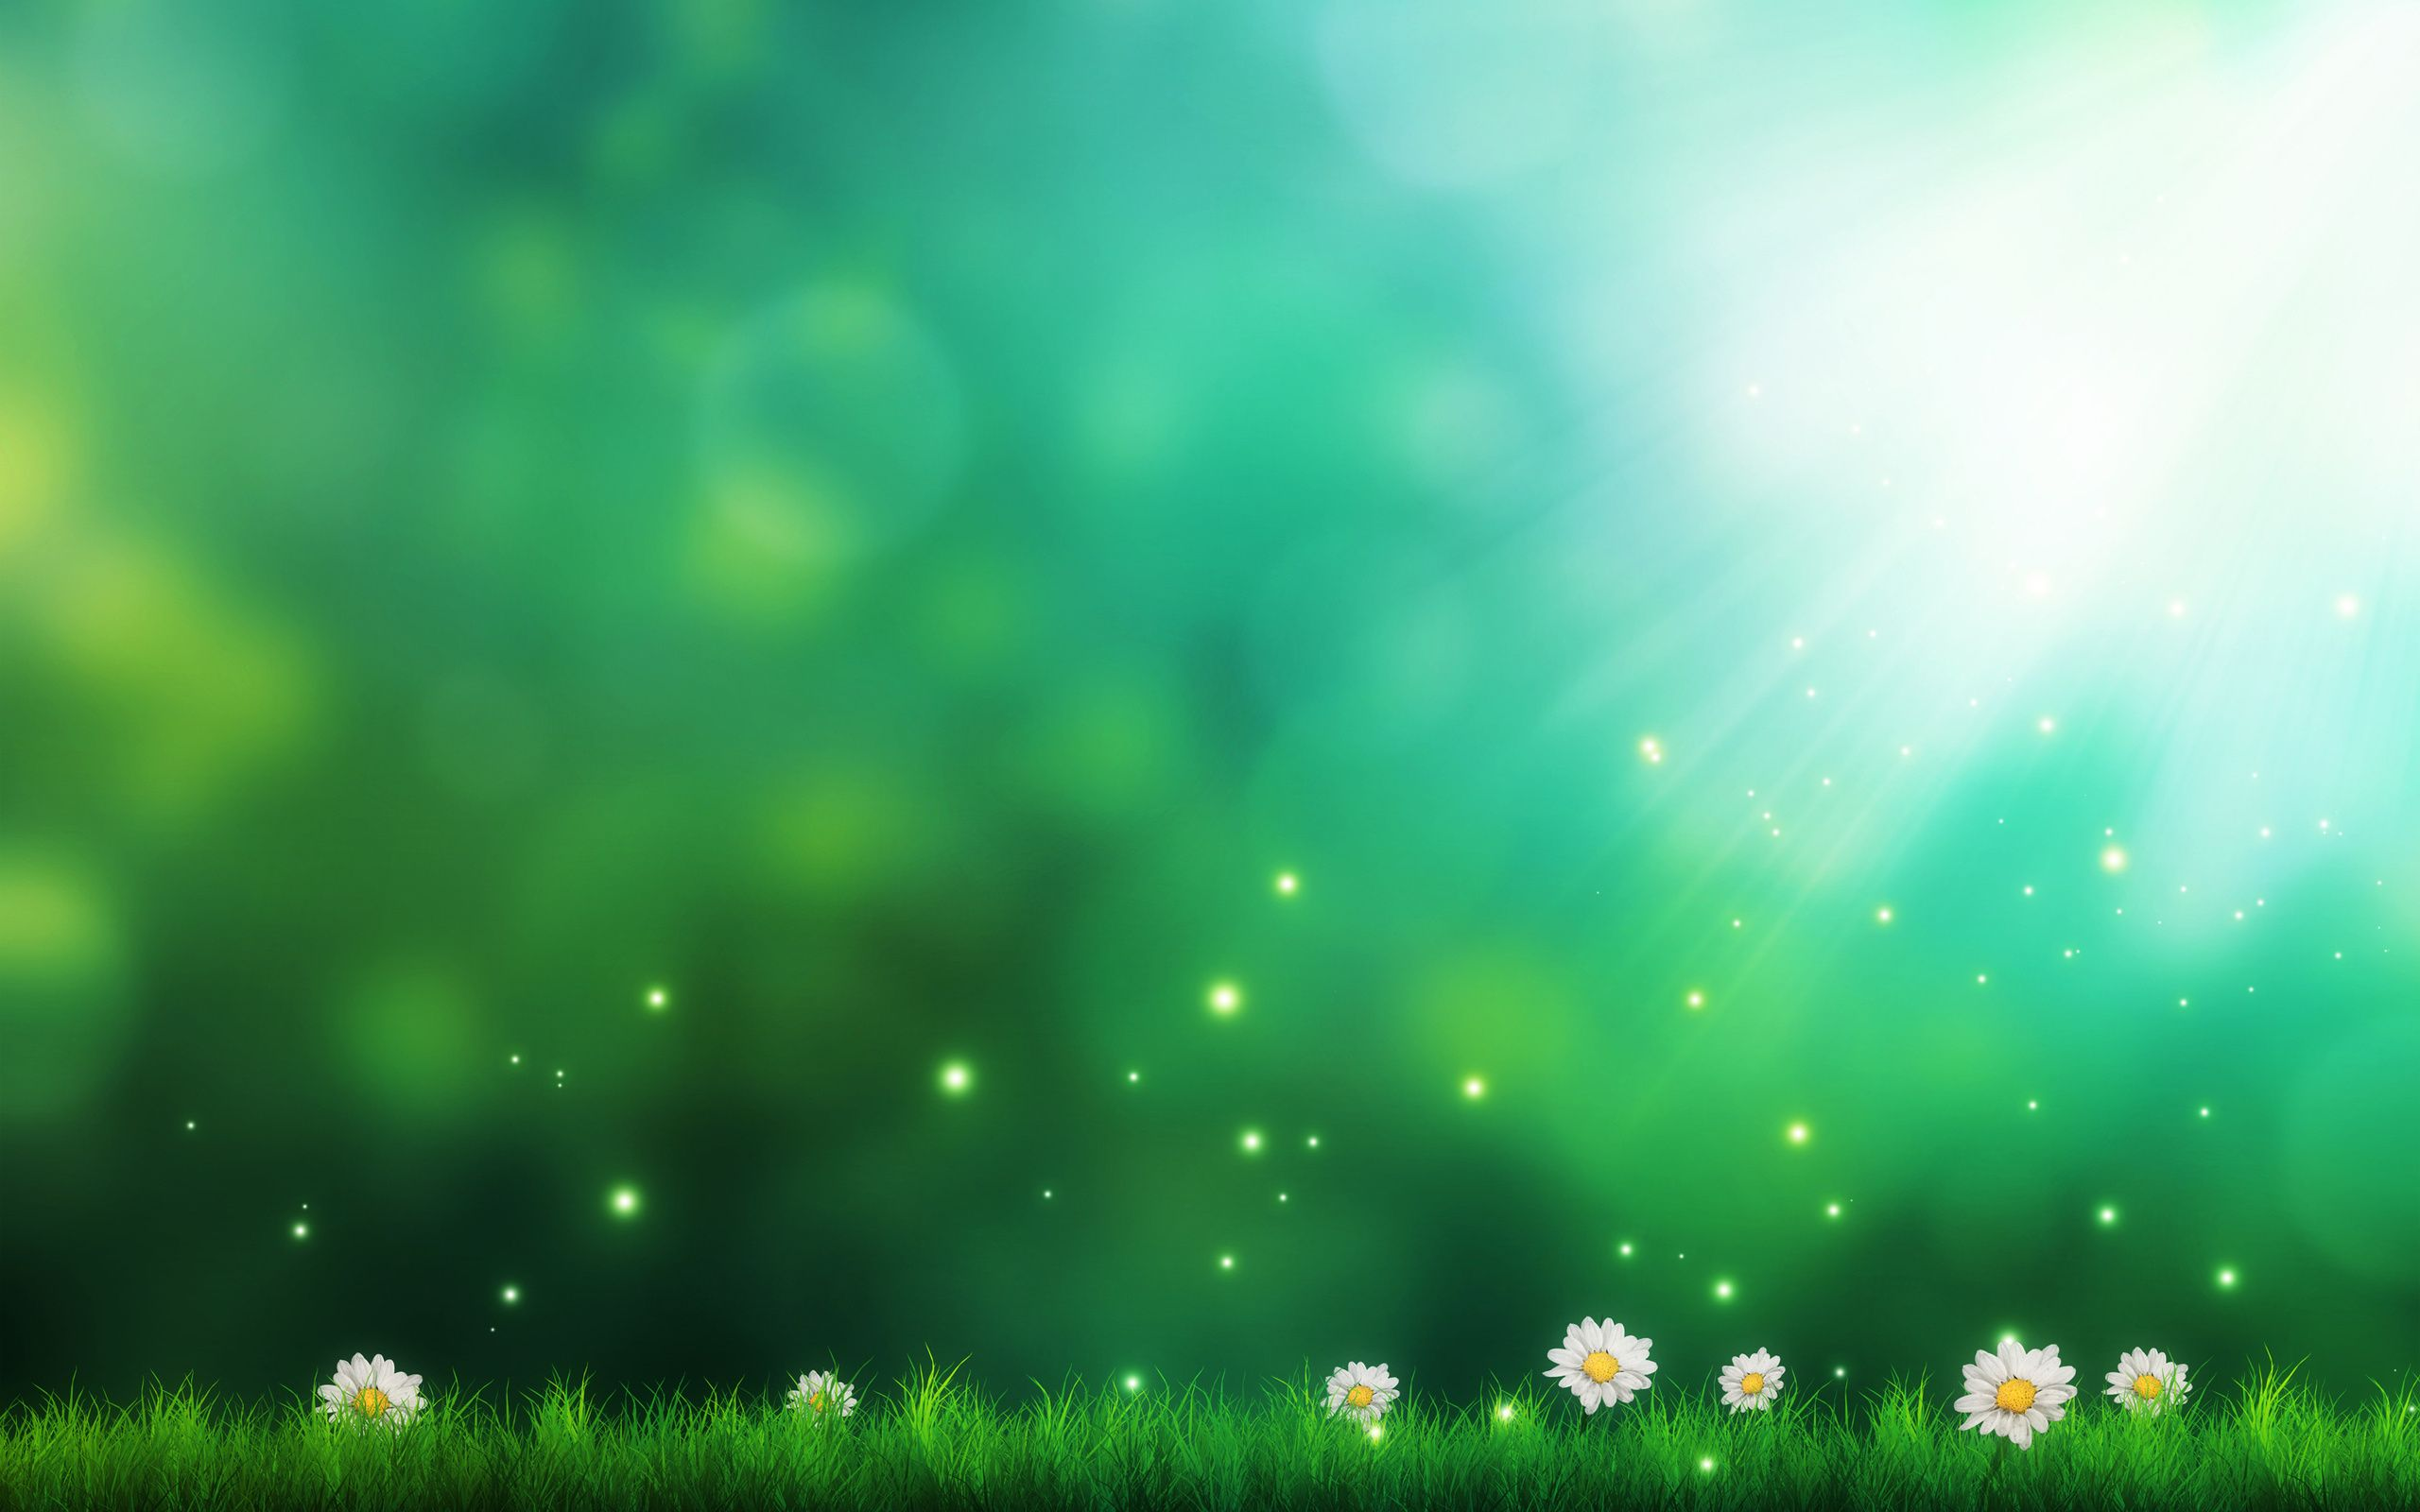 46 Off Psychic Reading From Astrology Experts At Oranum Special Bonus 15 Off Your Order And Enj Hd Nature Wallpapers Green Nature Wallpaper Nature Wallpaper